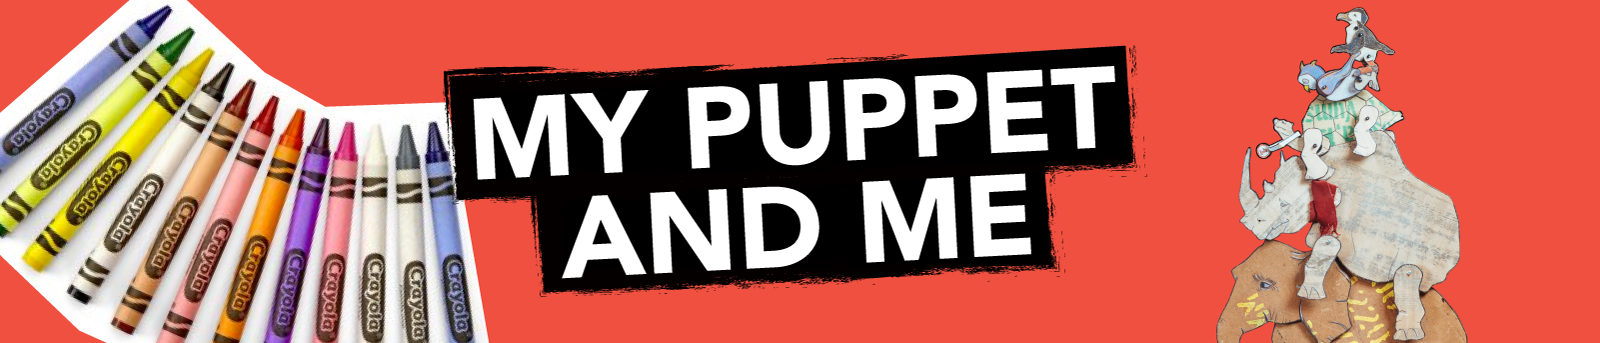 My Puppet and Me